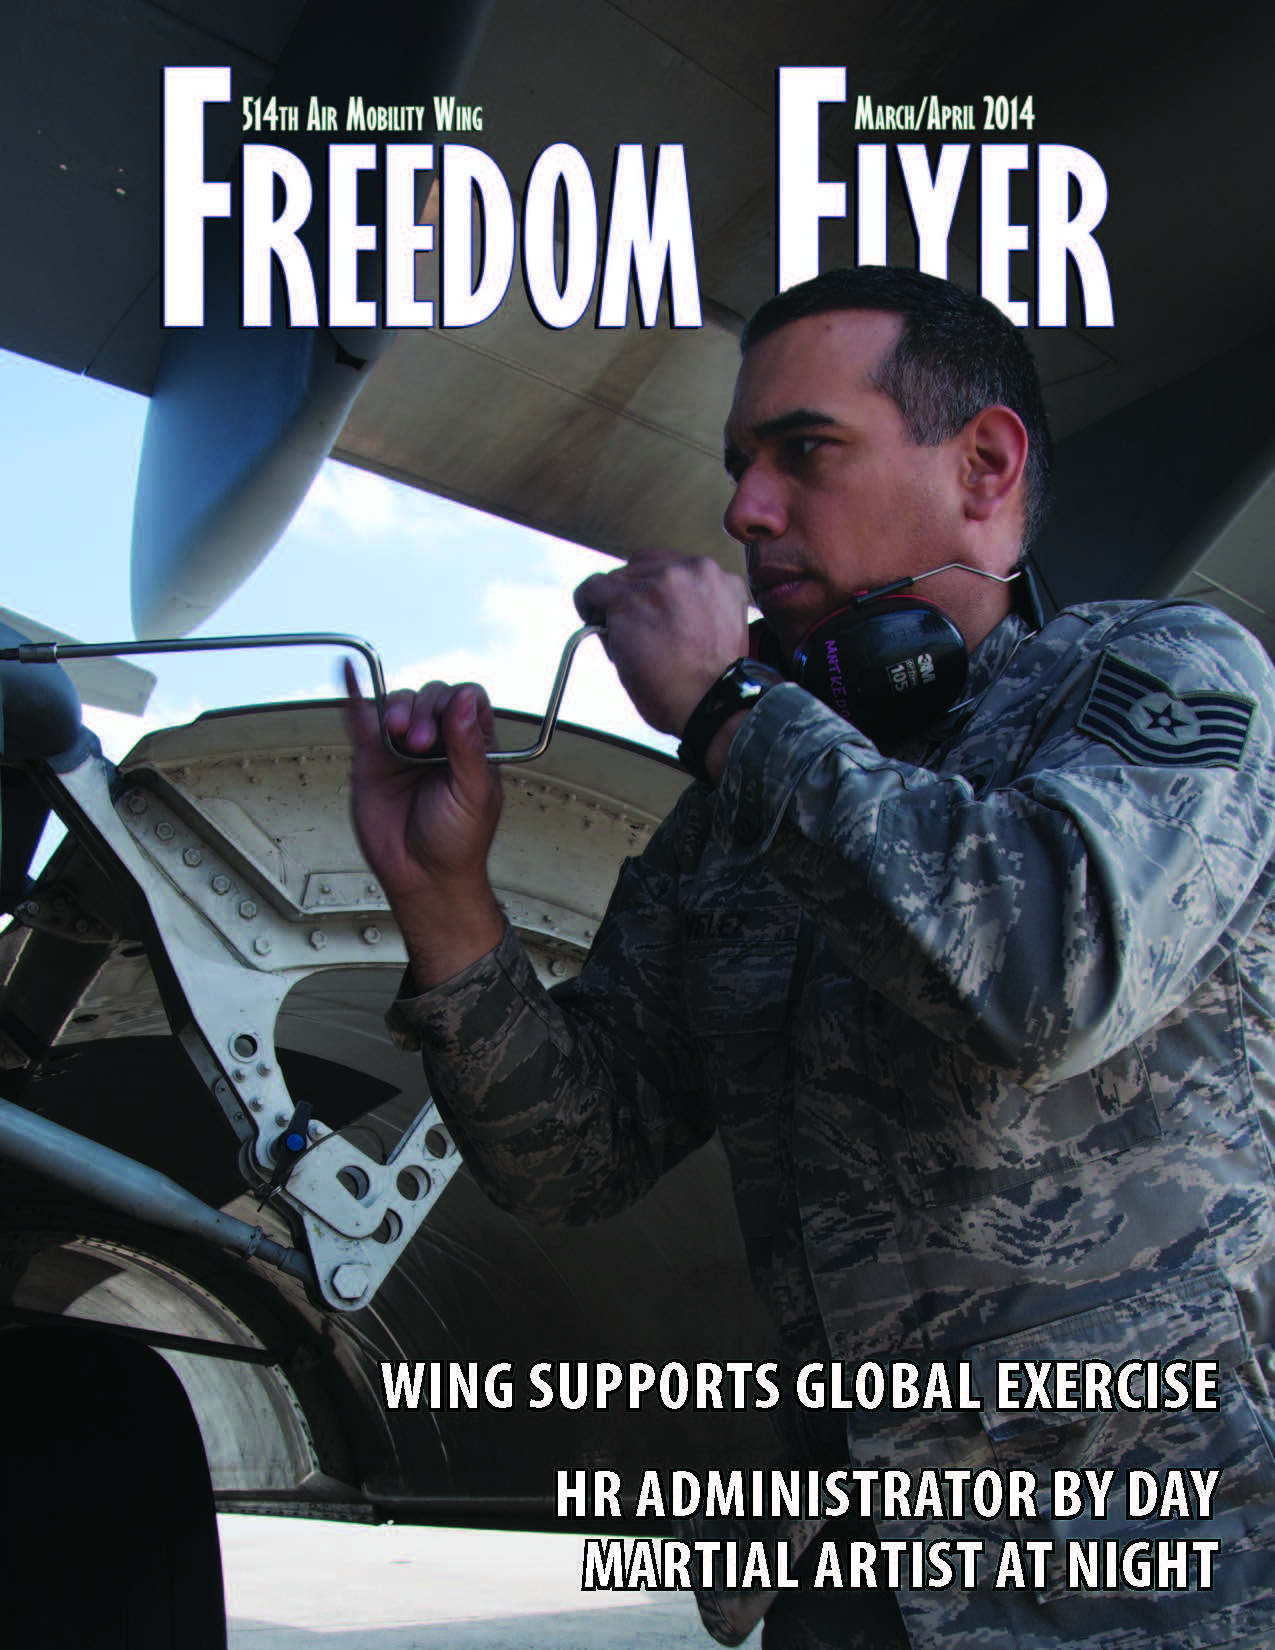 Freedom Flyer - March-April 2014